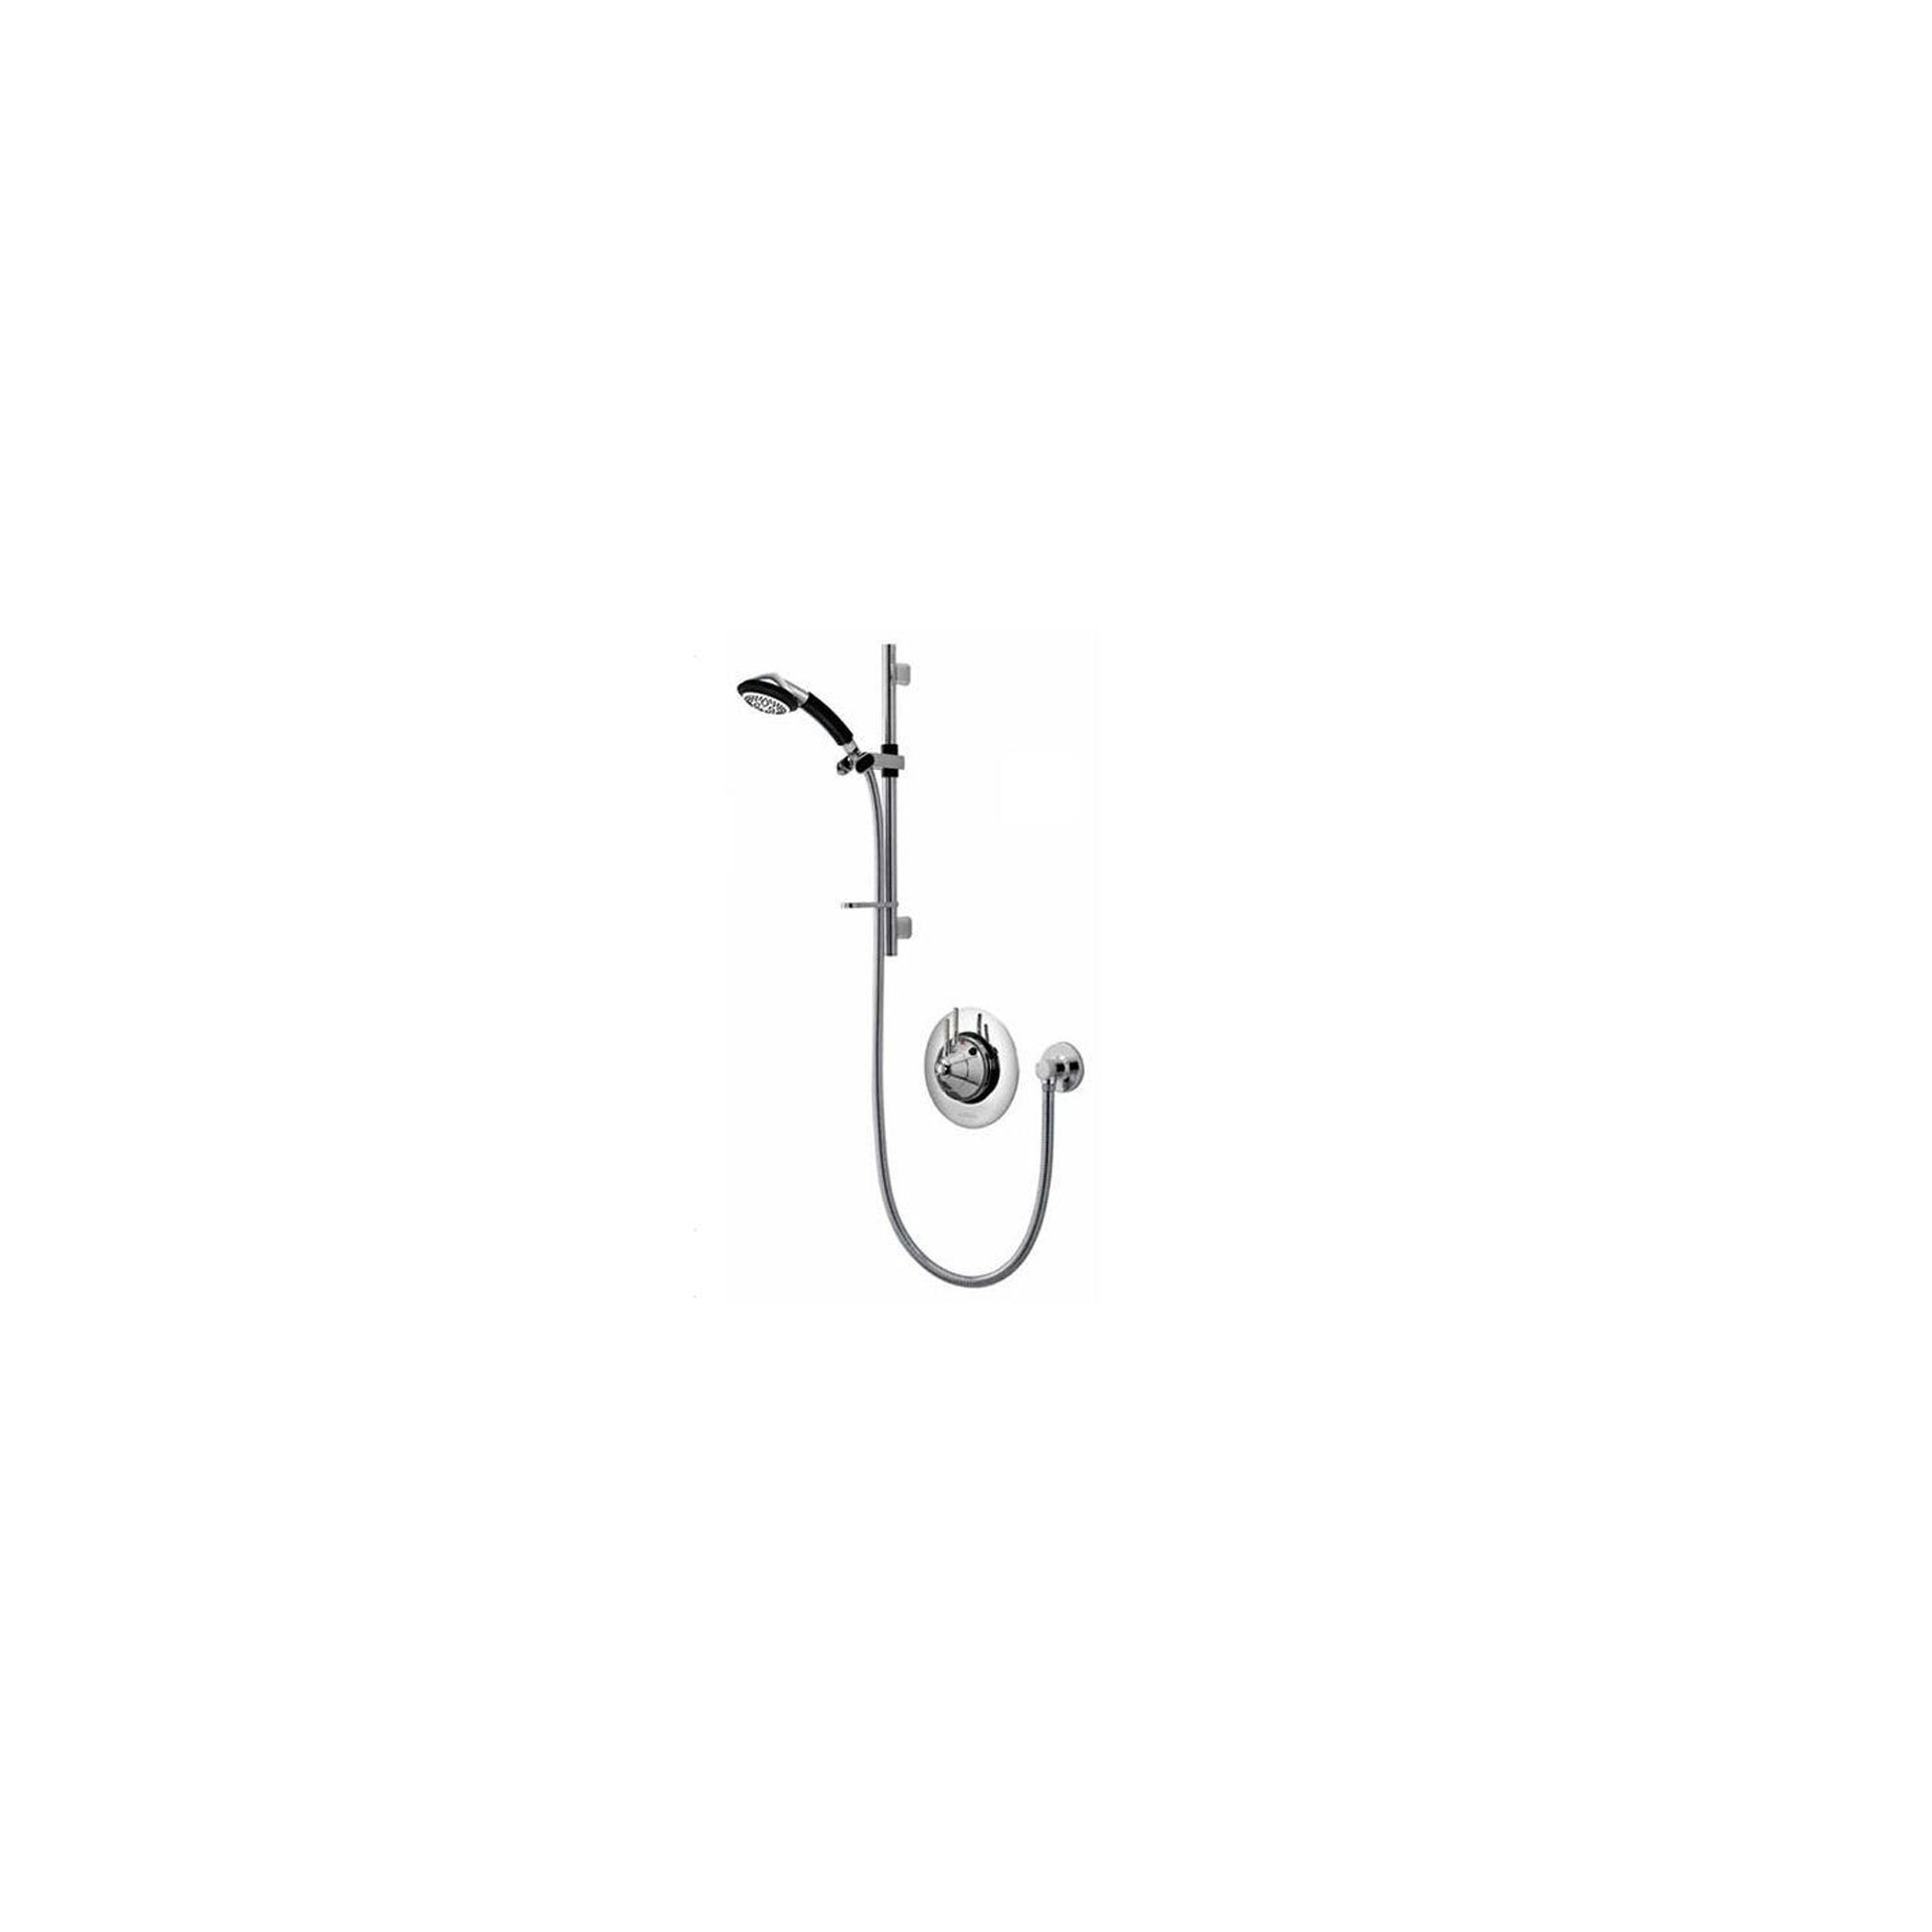 Aqualisa Axis Thermo Concealed Mixer Valve with Adjustable Head Kit at Tesco Direct